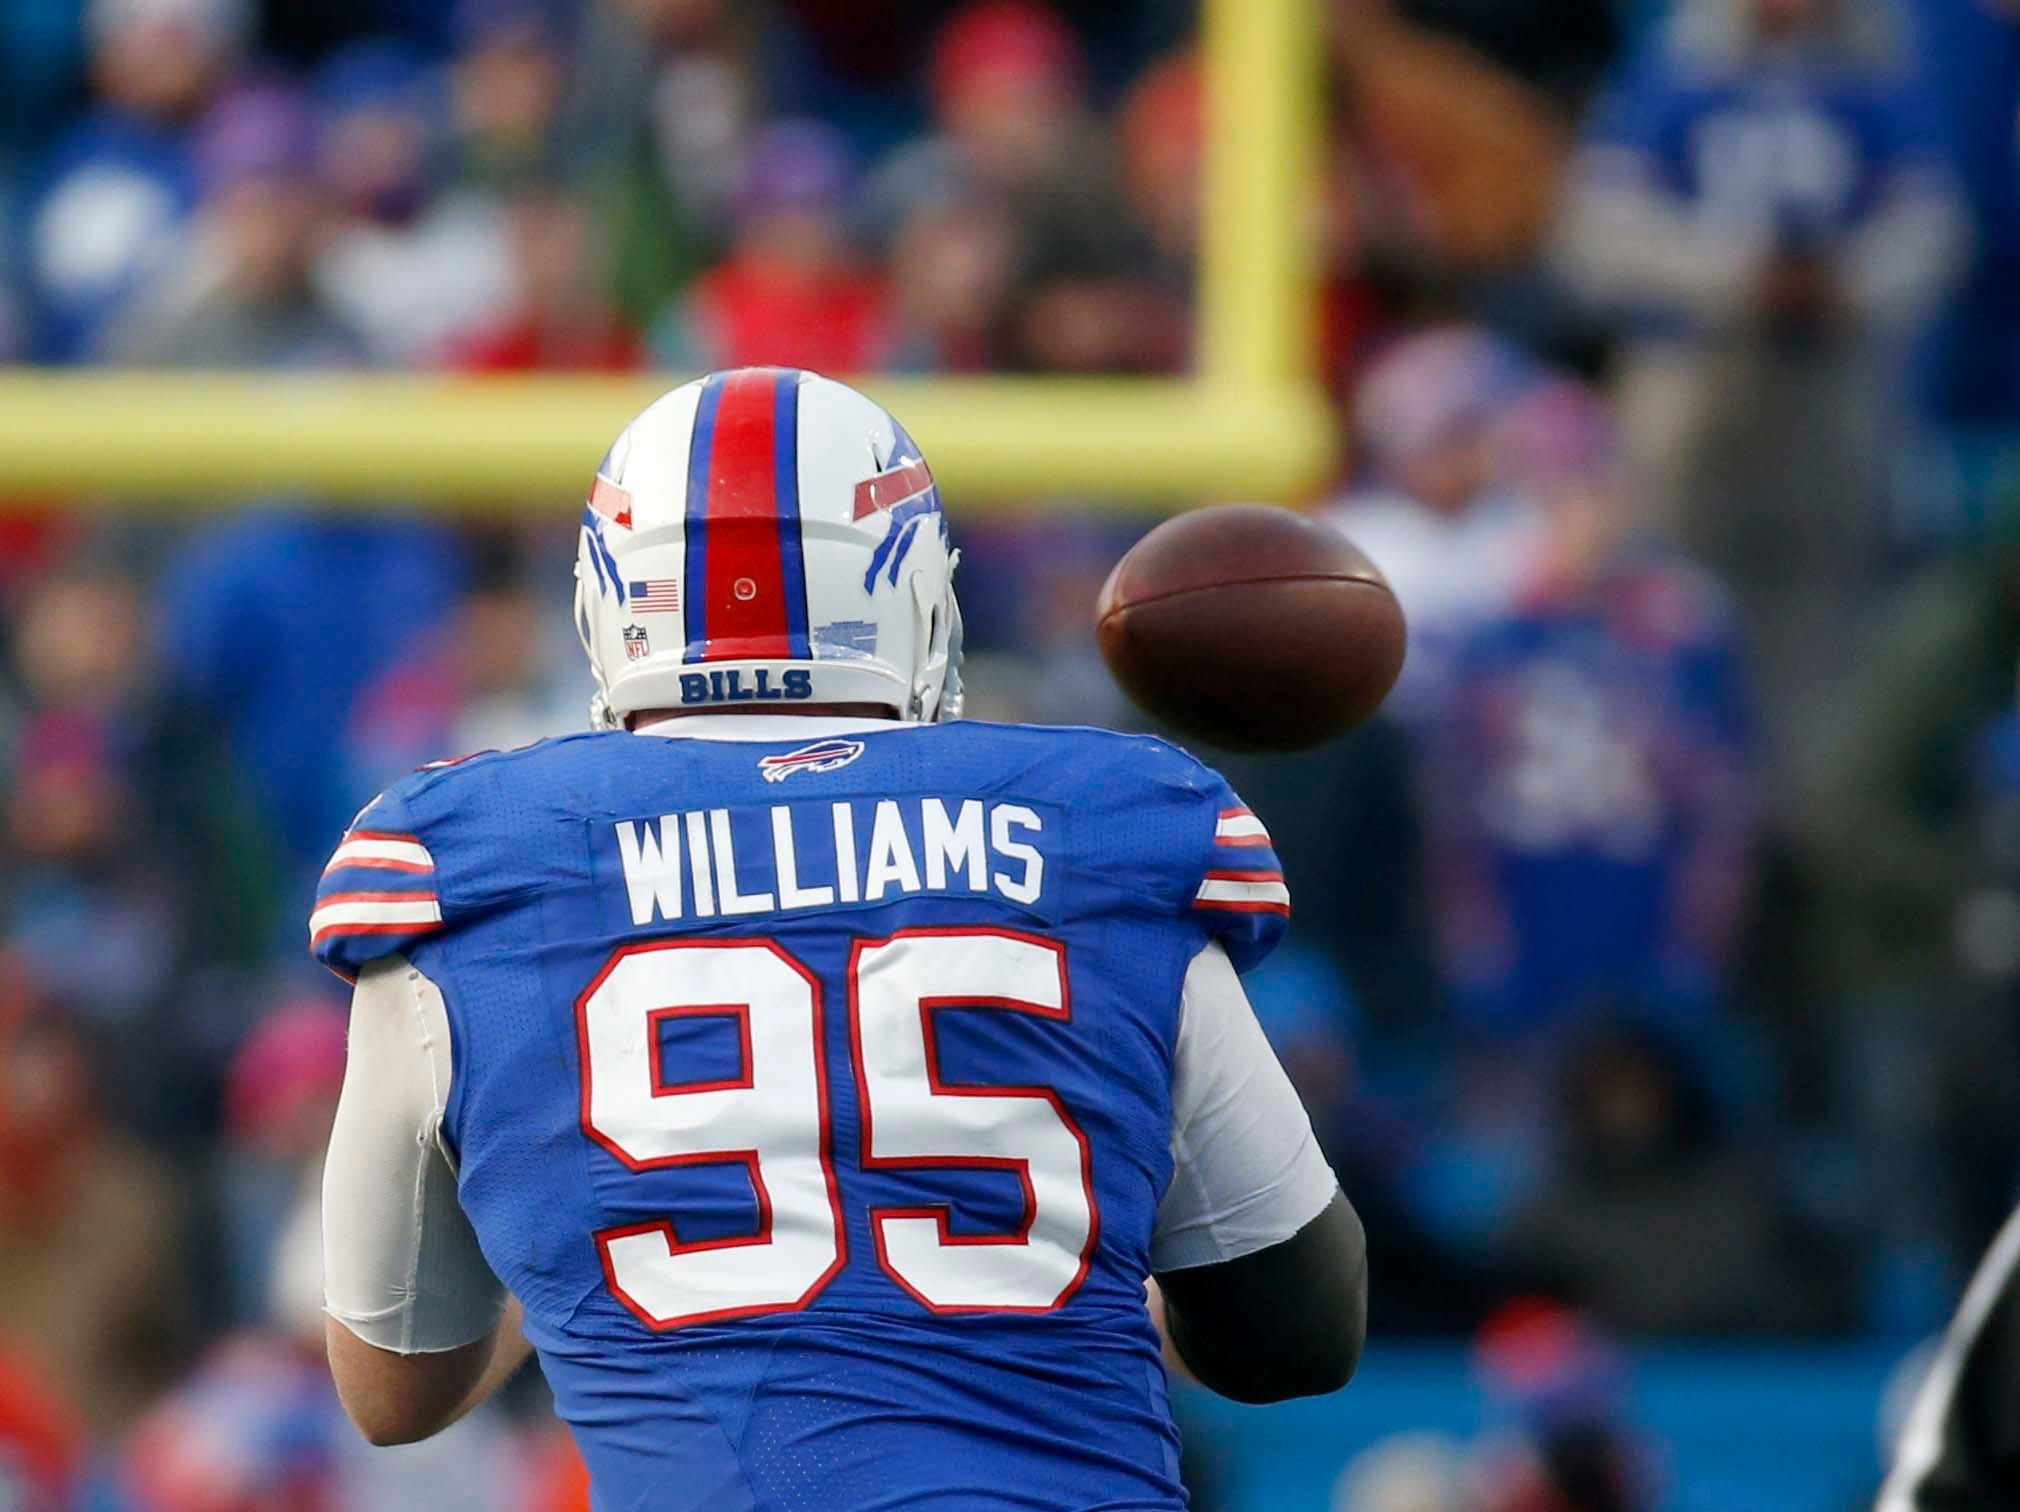 Dec 30, 2018; Orchard Park, NY, USA; Buffalo Bills defensive tackle Kyle Williams (95) makes a catch during the second half against the Miami Dolphins at New Era Field. Mandatory Credit: Timothy T. Ludwig-USA TODAY Sports